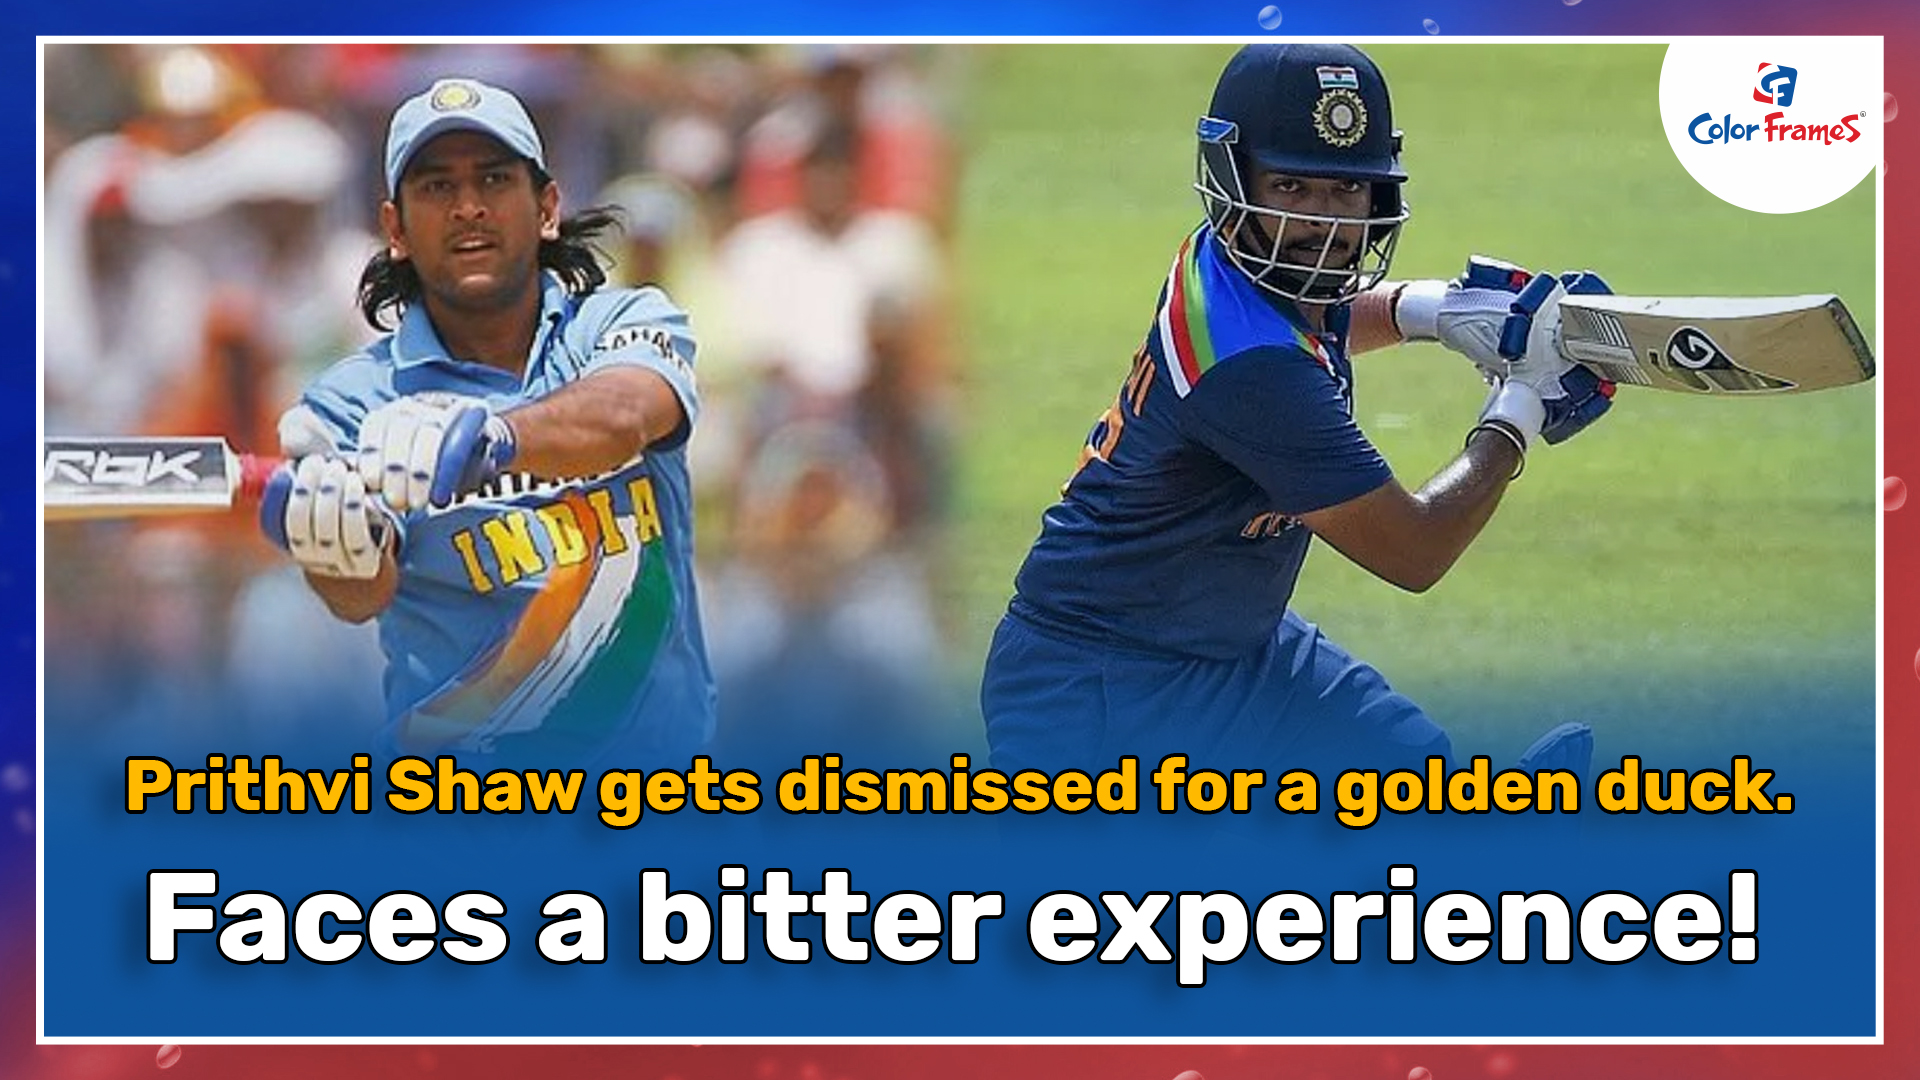 Prithvi Shaw gets dismissed for a golden duck. Faces a bitter experience!